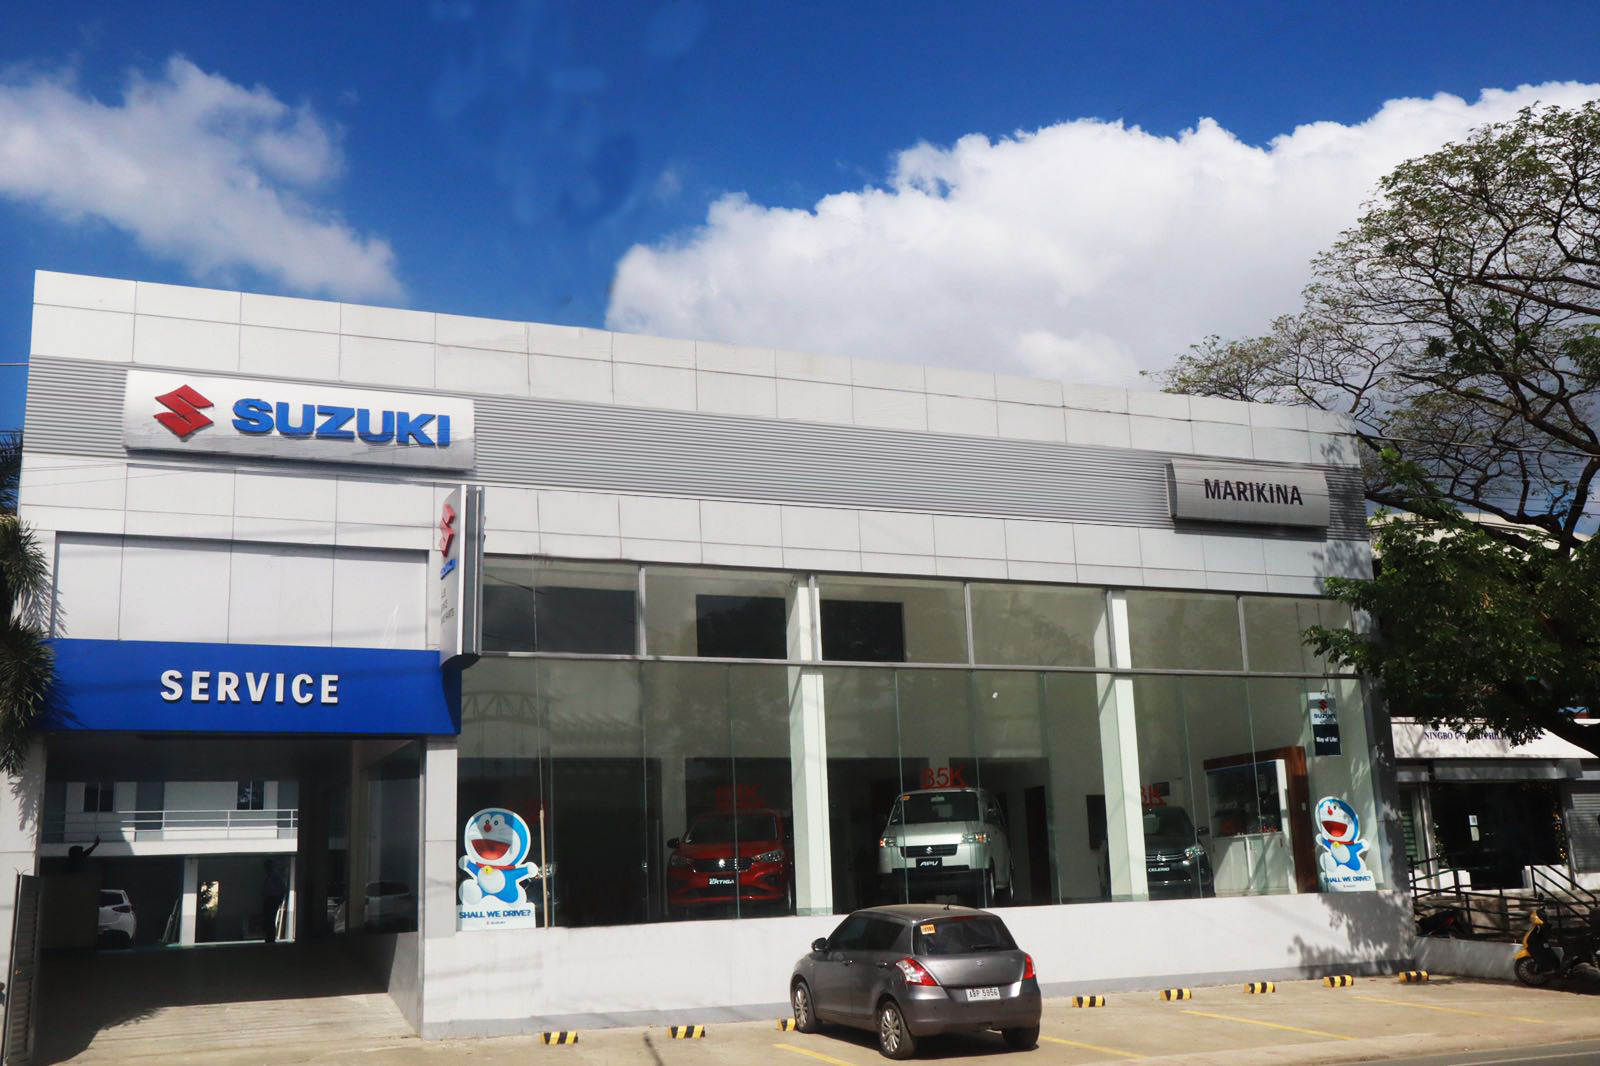 Suzuki Philippines Celebrates First Virtual Grand Opening for One of Its Dealerships In the East